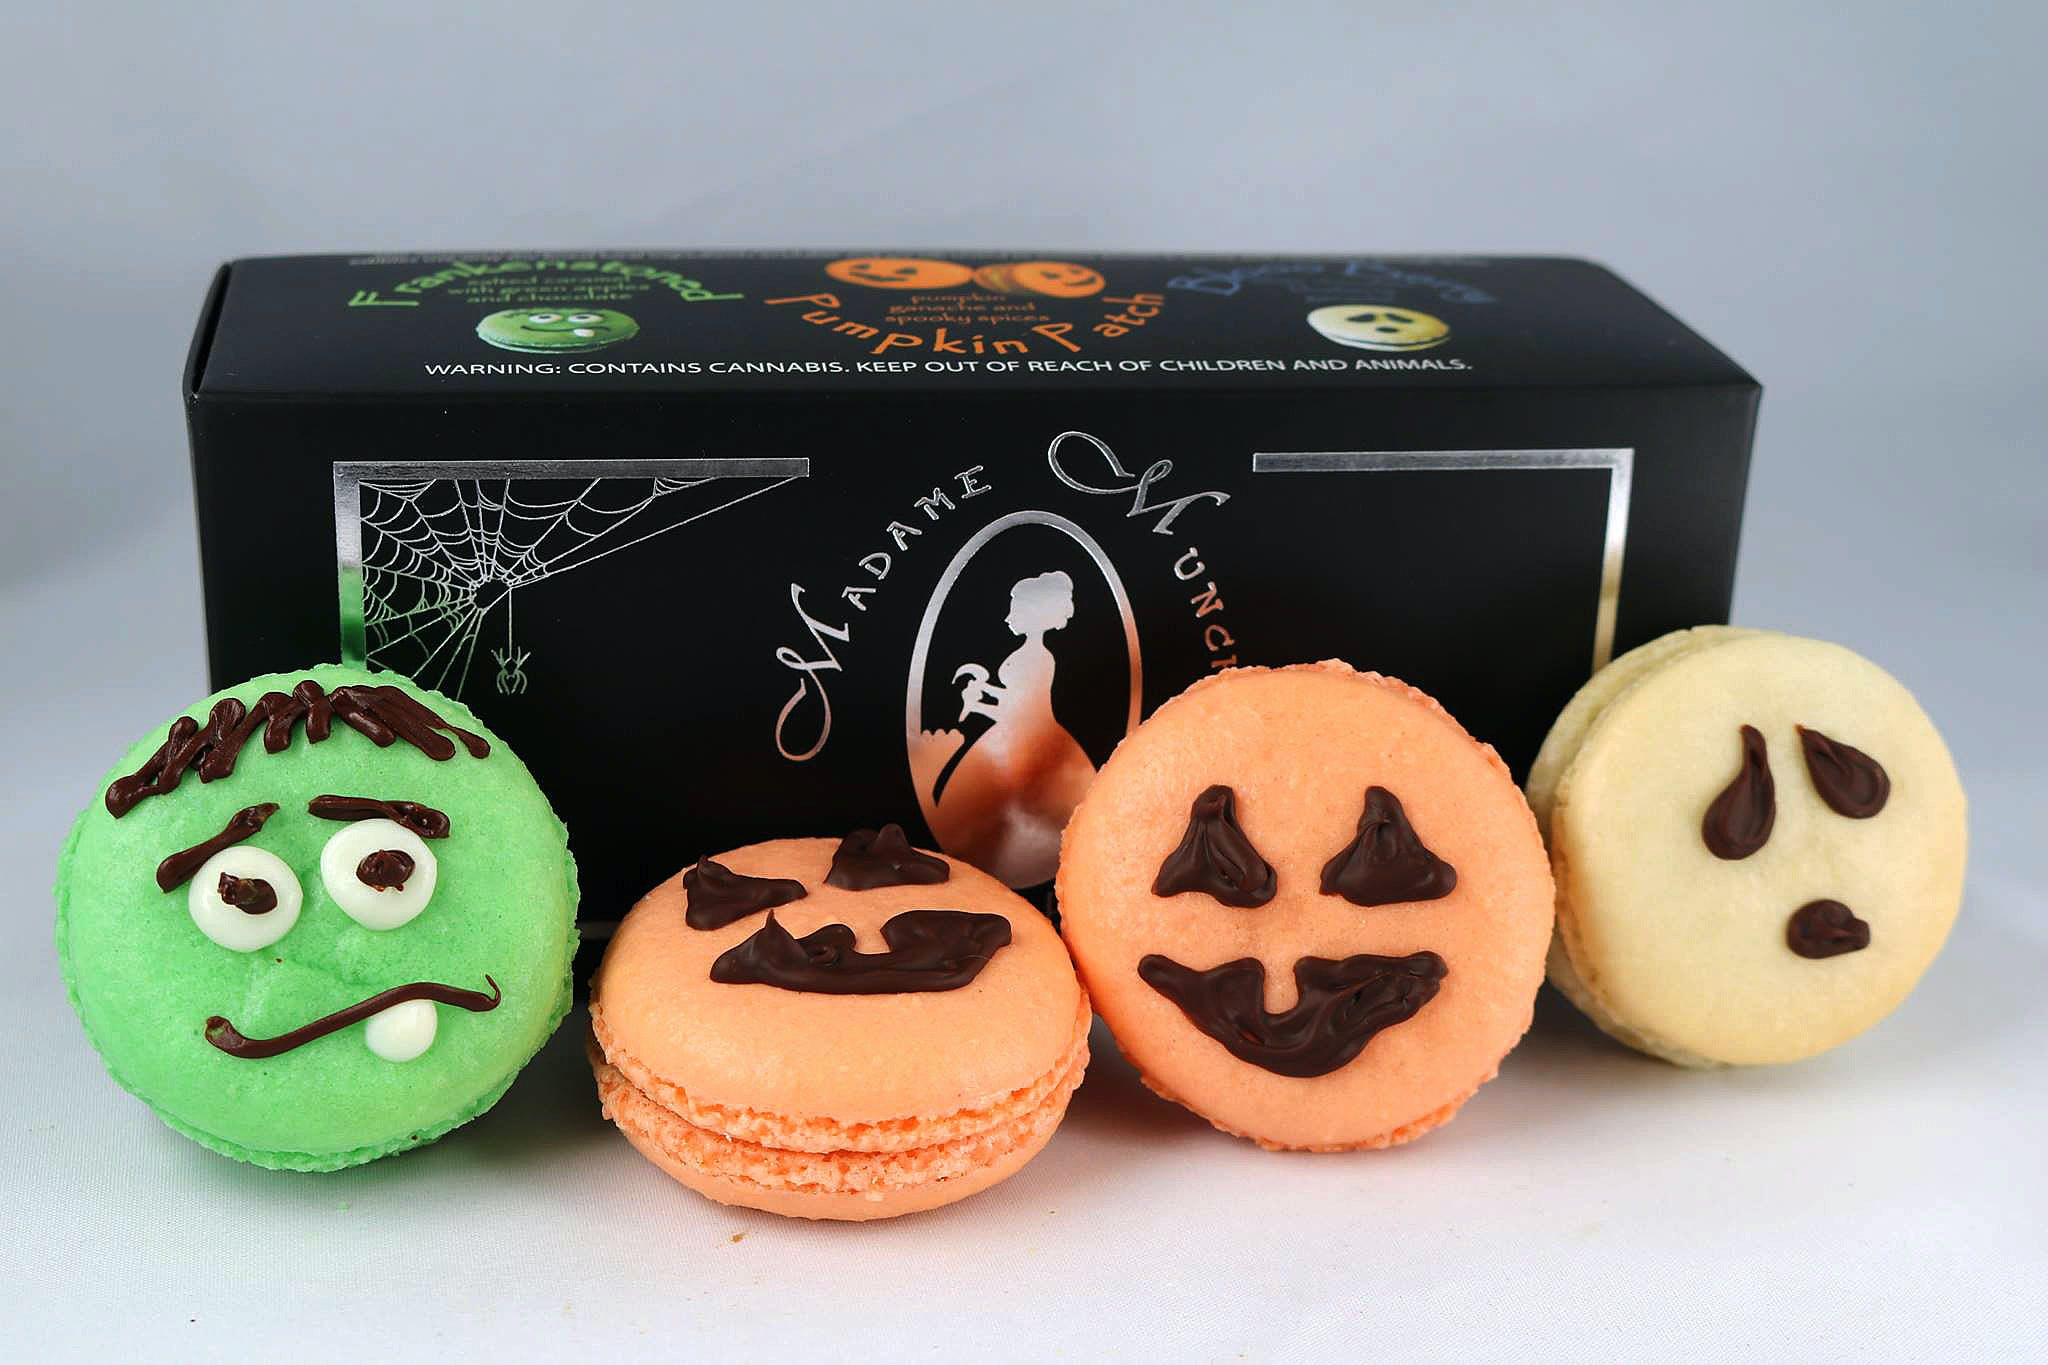 The Best Halloween Edibles for Weed Lovers in all 50 States The Best Halloween Edibles for Weed Lovers in all 50 States